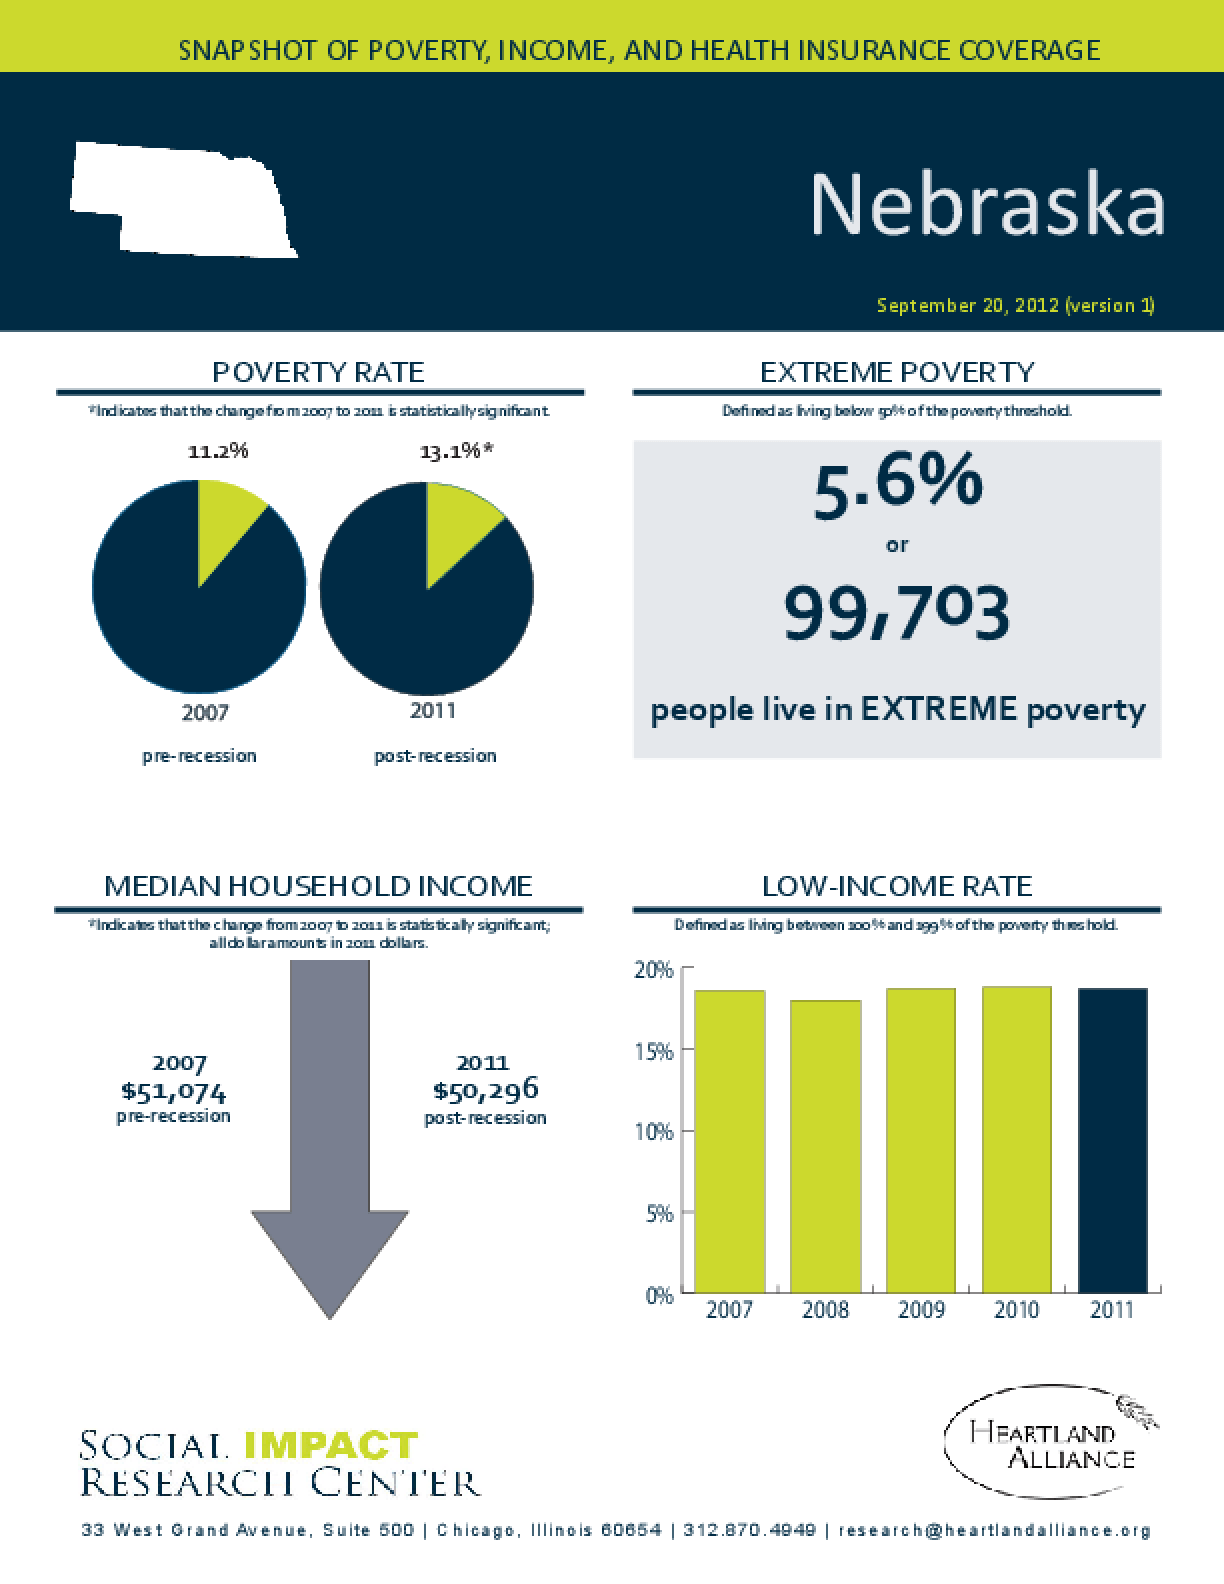 Nebraska: Snapshot of Poverty, Income, and Health Insurance Coverage - 2011